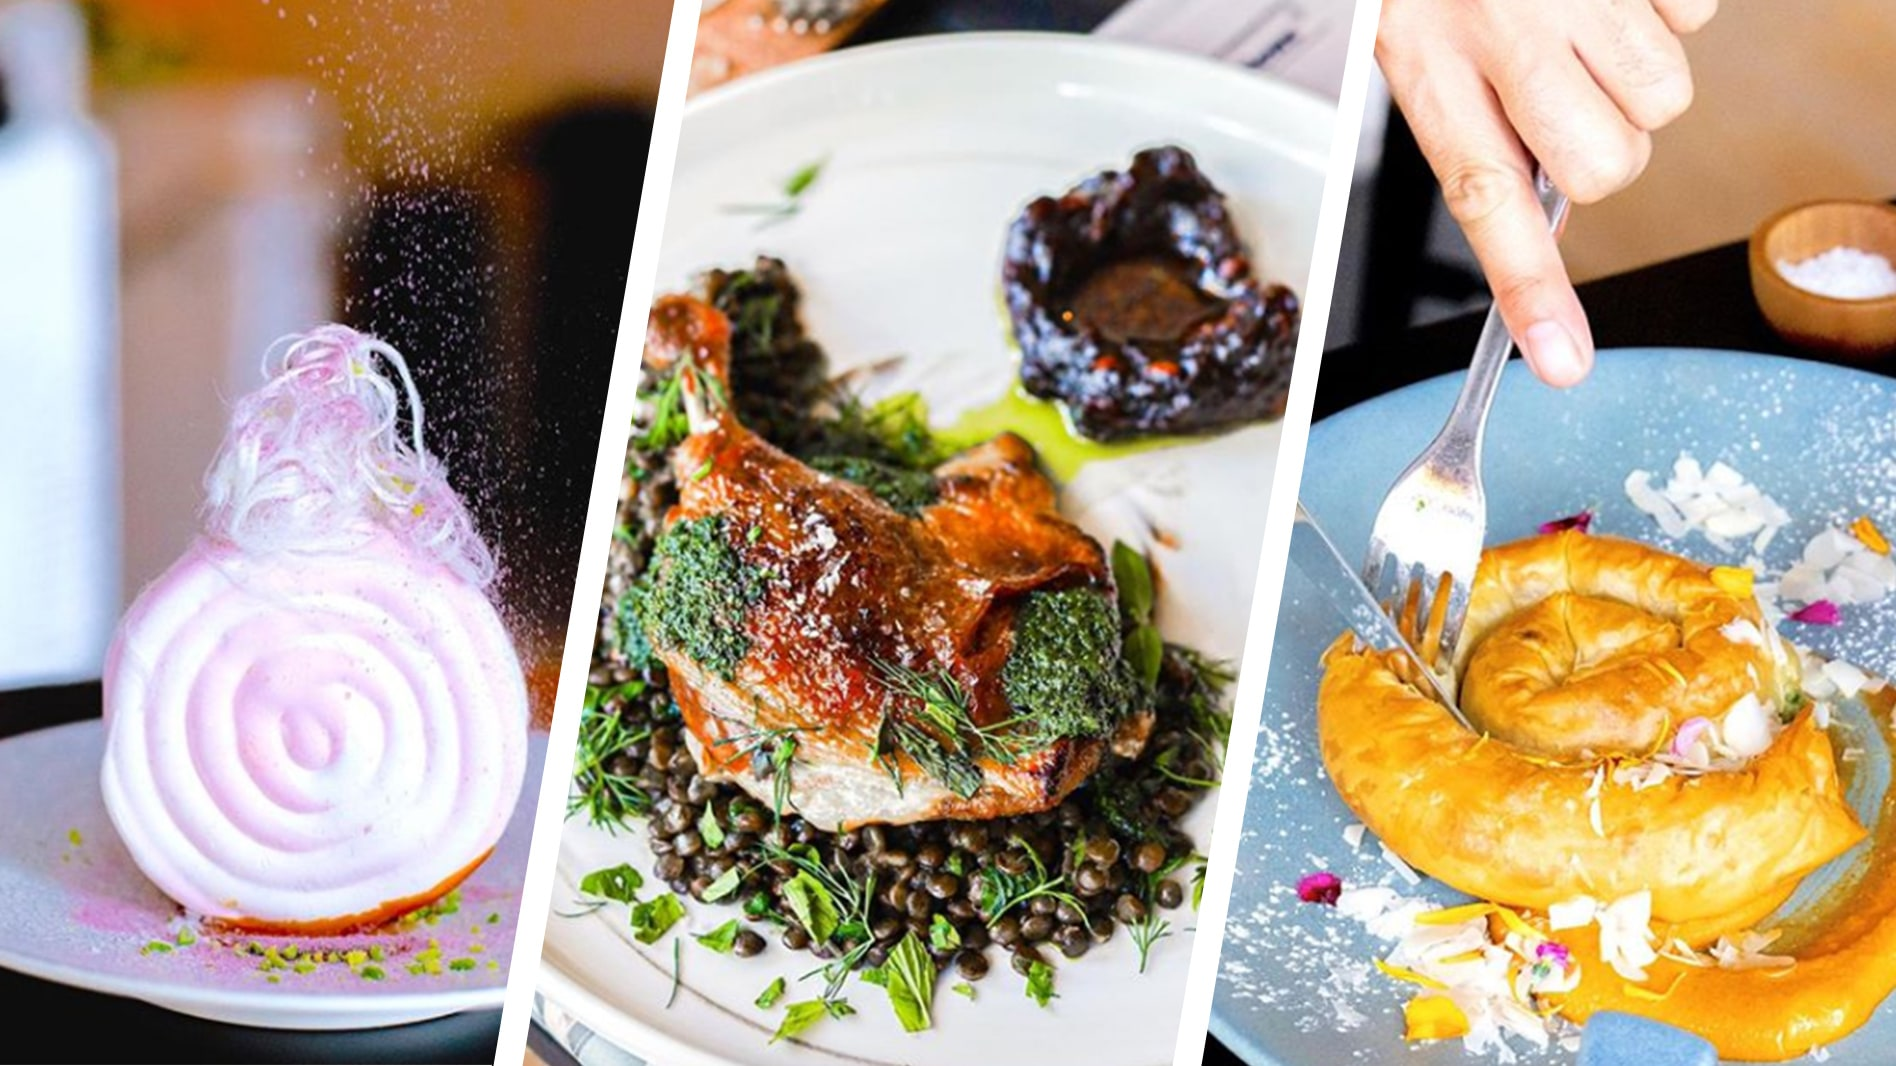 Is your winter menu cutting-edge and attracting new customers?